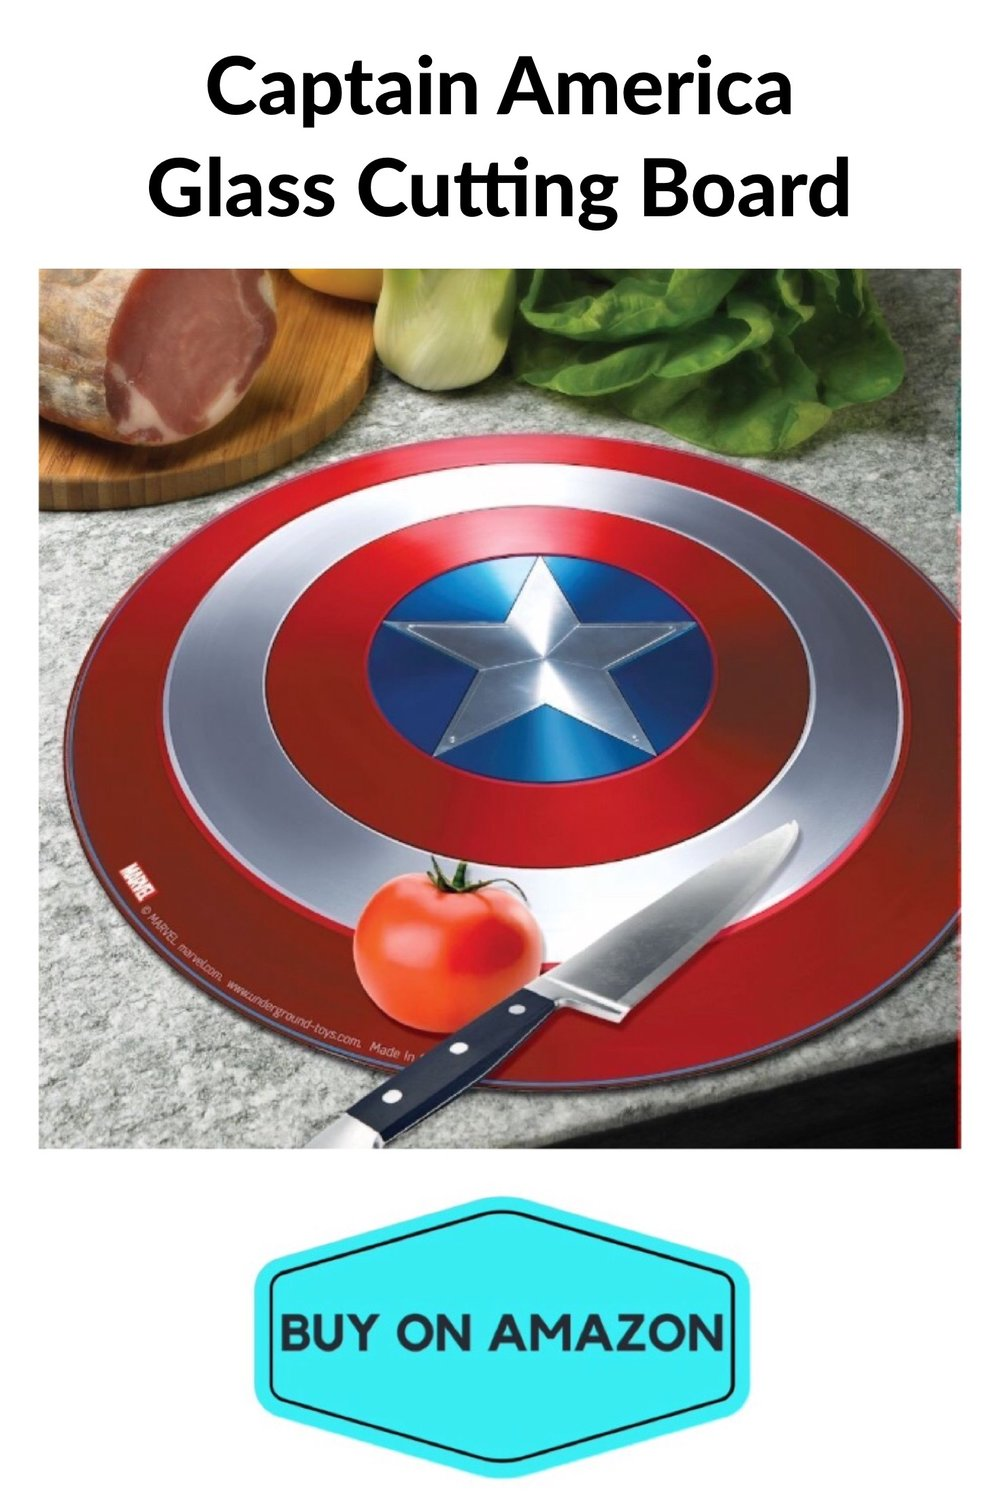 Captain America Glass Cutting Board